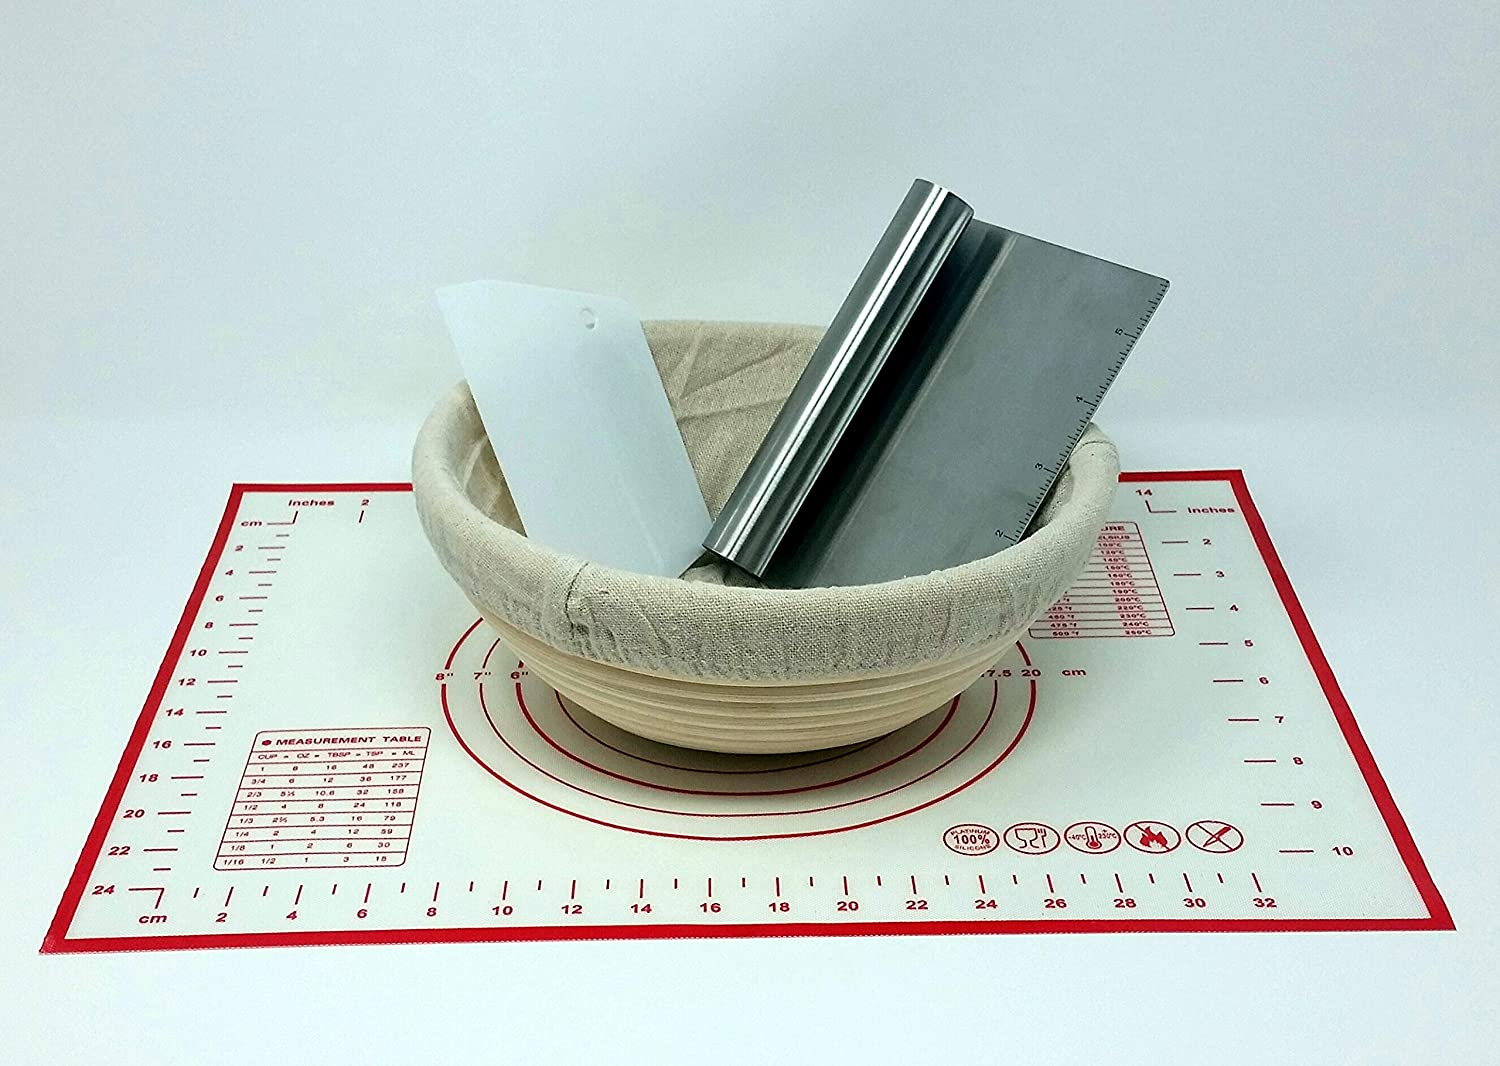 Platinum Silicon Baking Mat with Measurement Table /& Temp Conversion Chart Linen Basket Liner Artisan Bread for the Beginner Natural Banneton Proofing Basket Cleaning Brush Chopper//Scraper